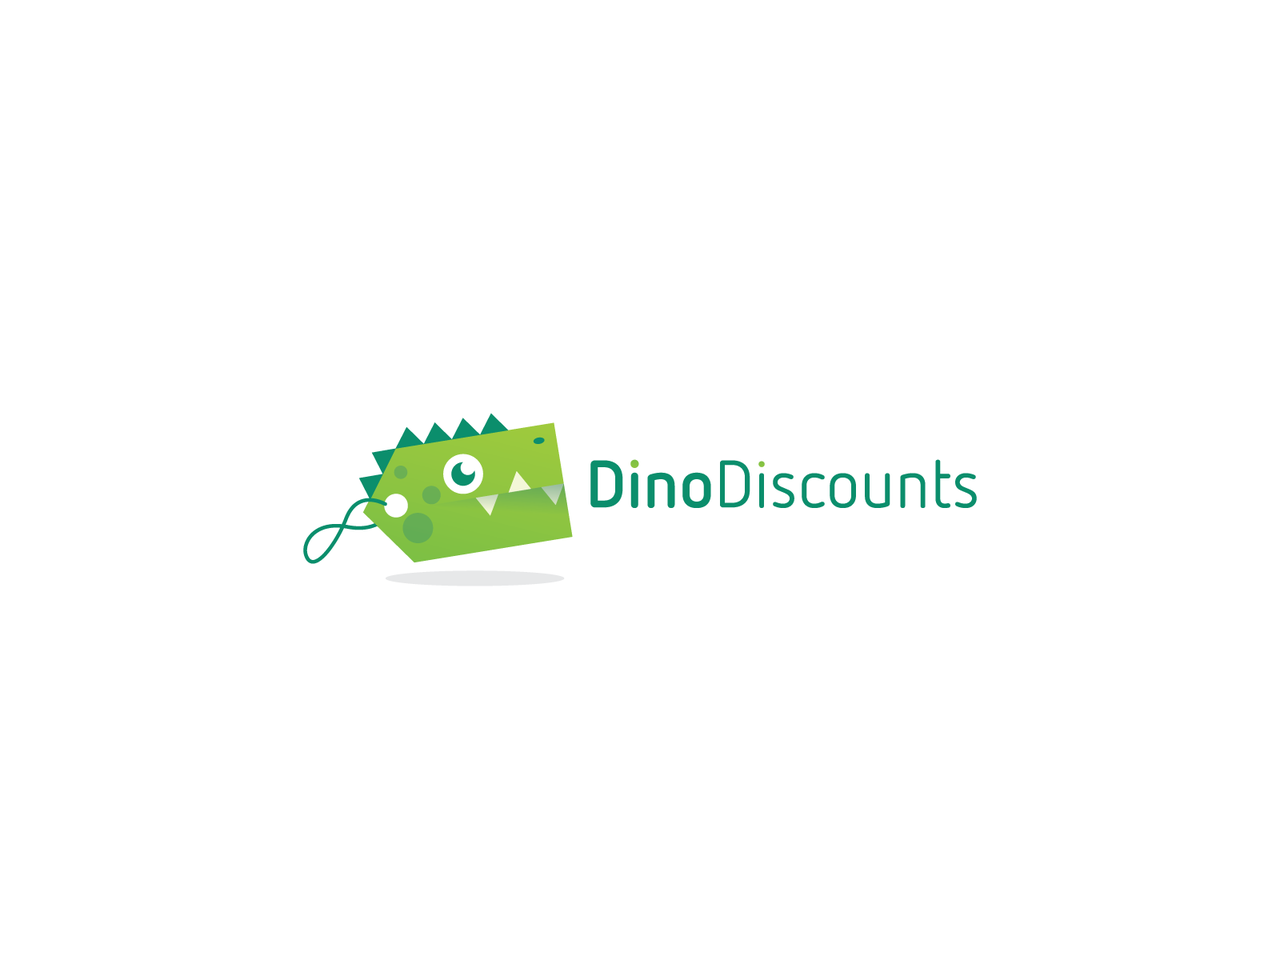 dinosaur logo green label